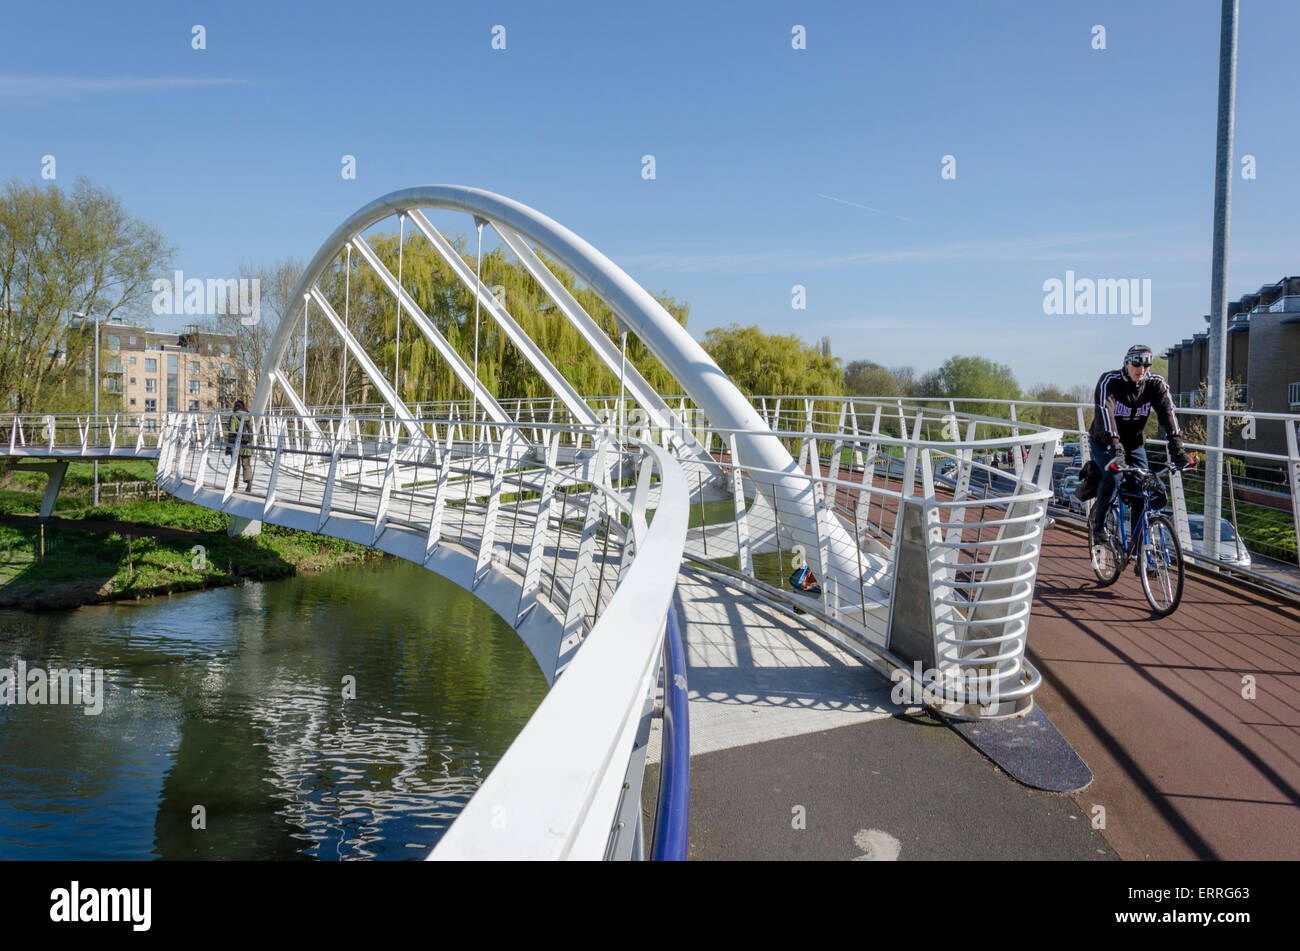 Riverside Bridge. Foot and cycle bridge opened 2008 costing £3.1m funded in part by Tesco - Stock Image